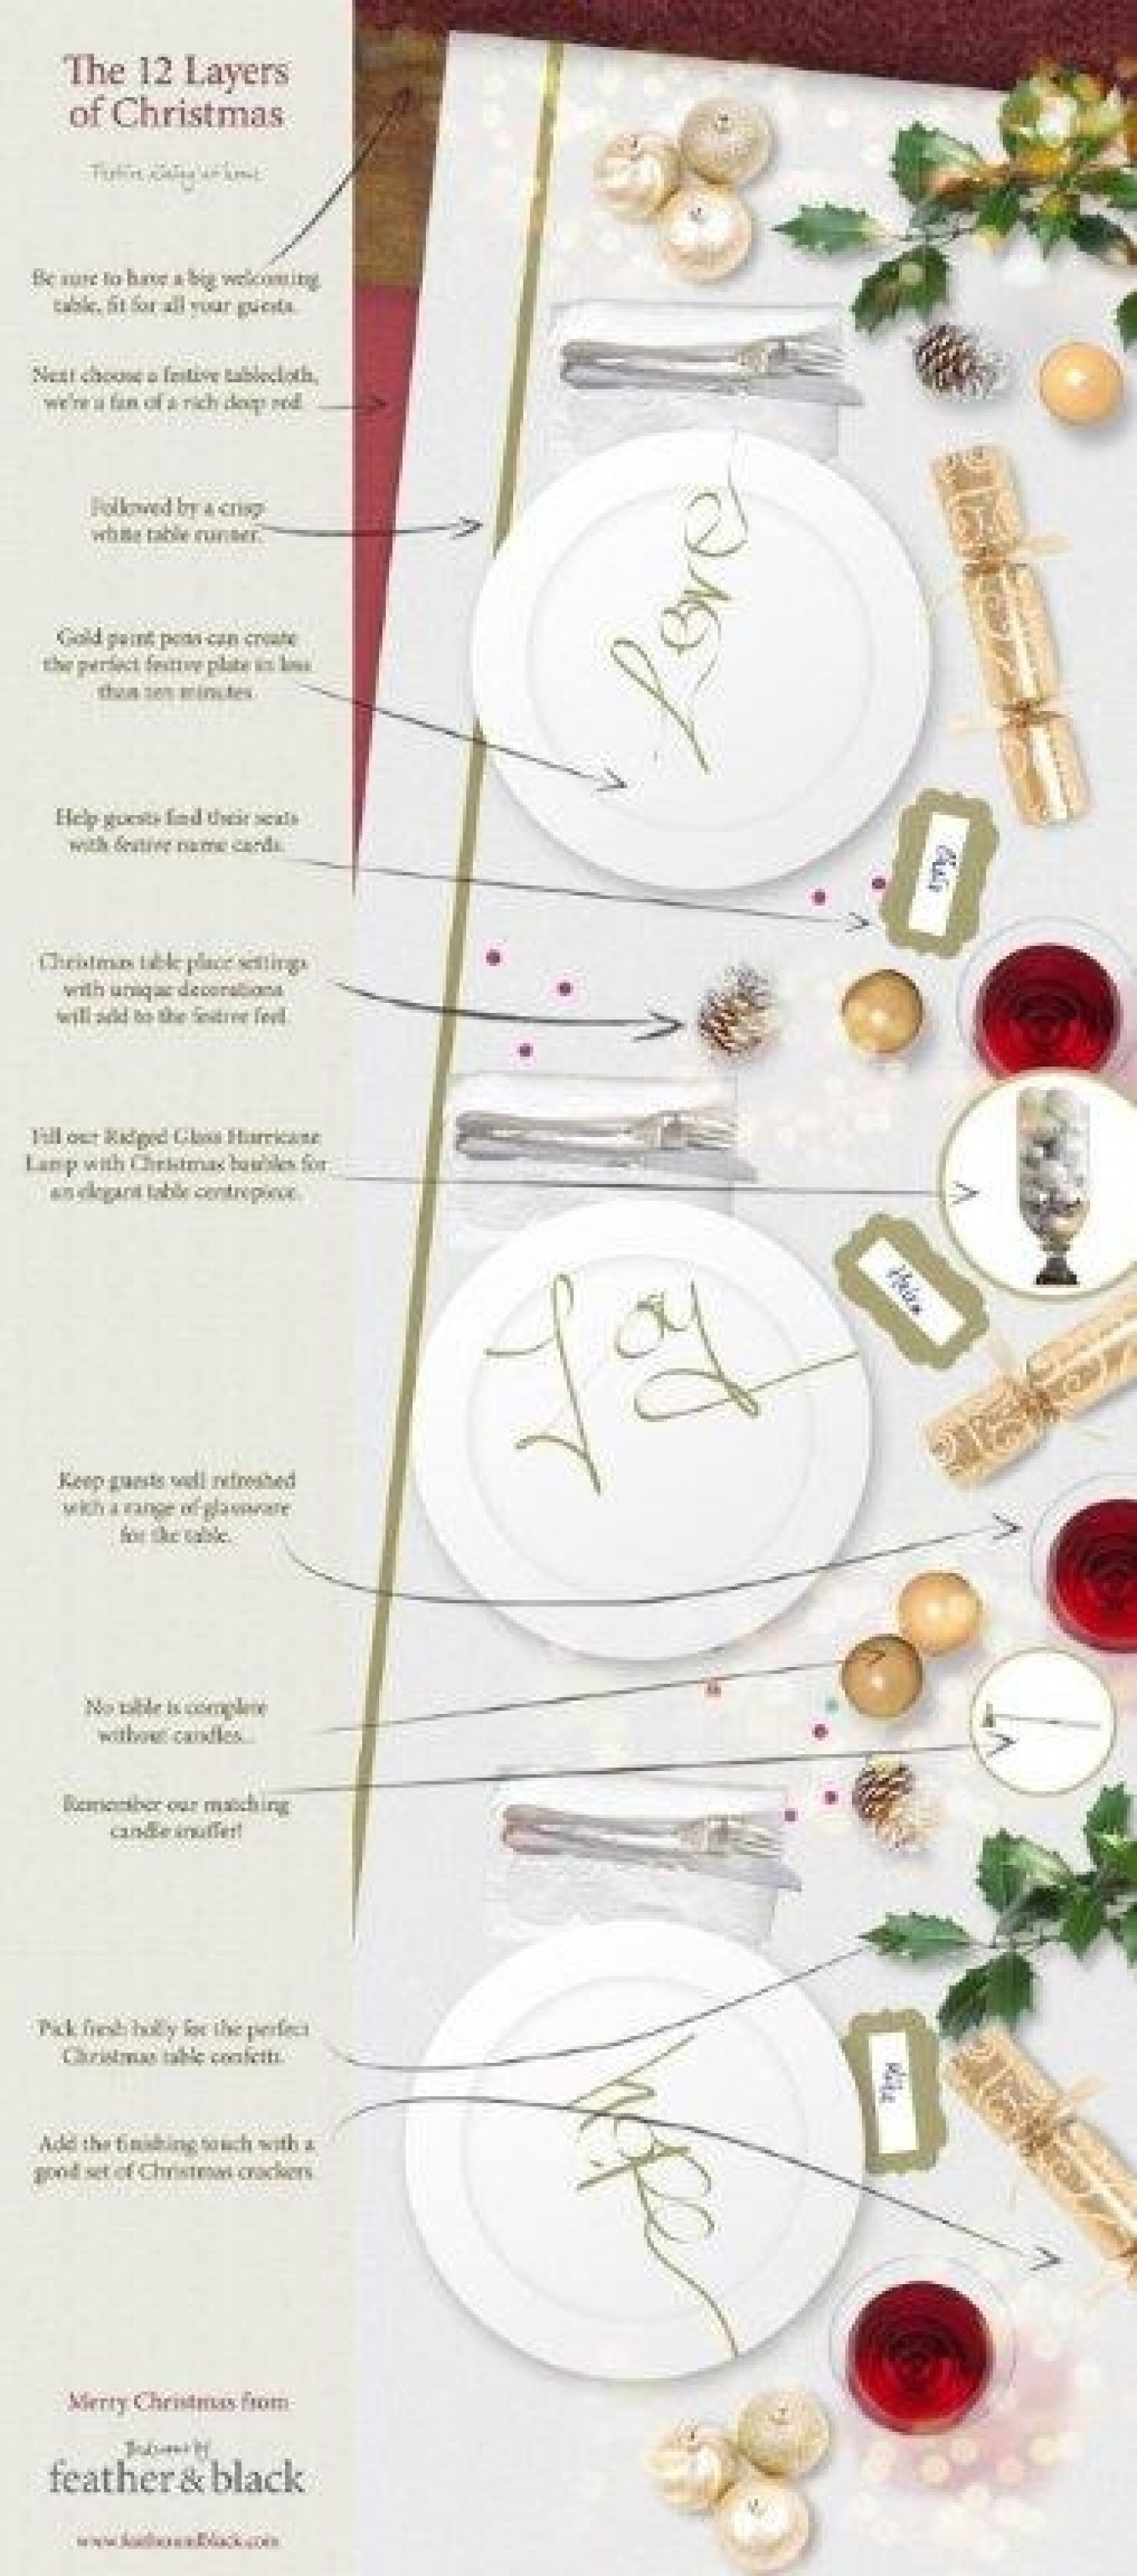 12 Layers of Christmas Infographic